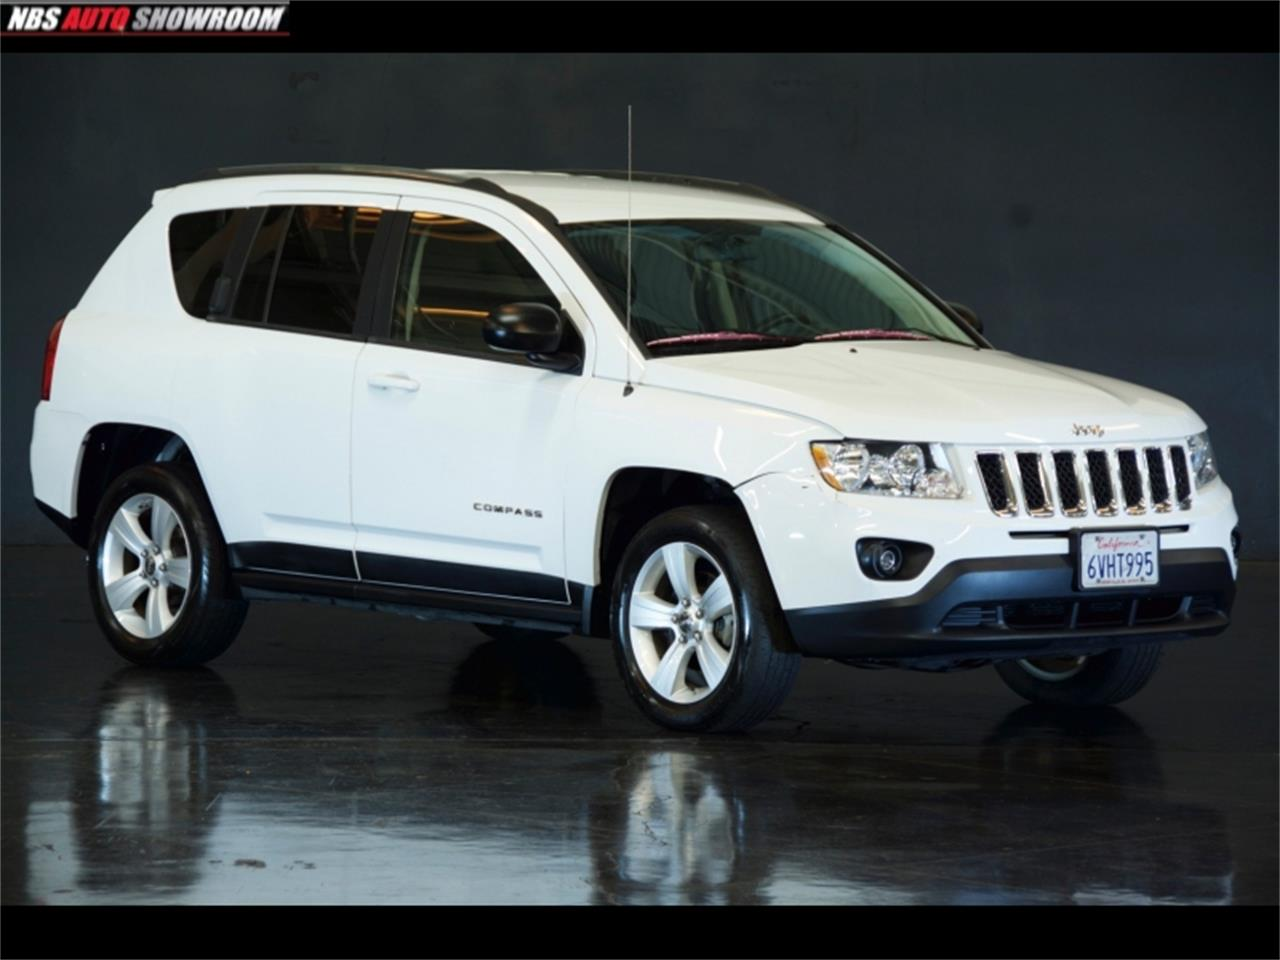 for sale 2011 jeep compass in milpitas, california cars - milpitas, ca at geebo